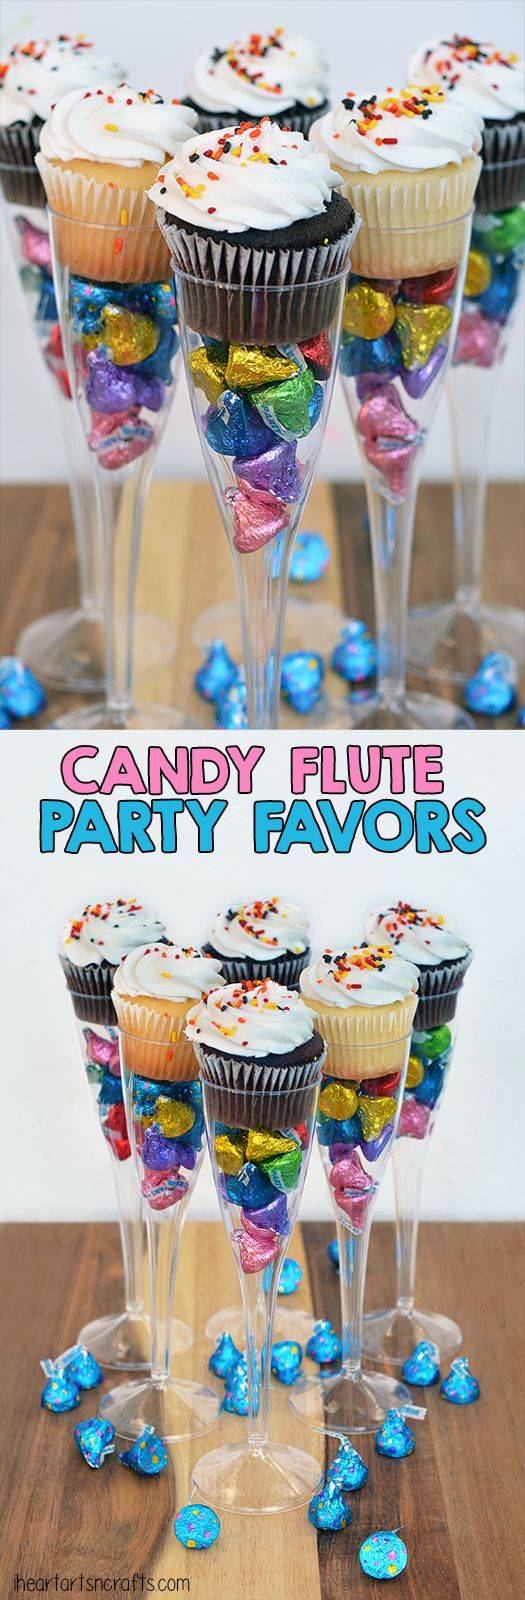 Best 25+ Candy favors ideas only on Pinterest | Candy party favors ...